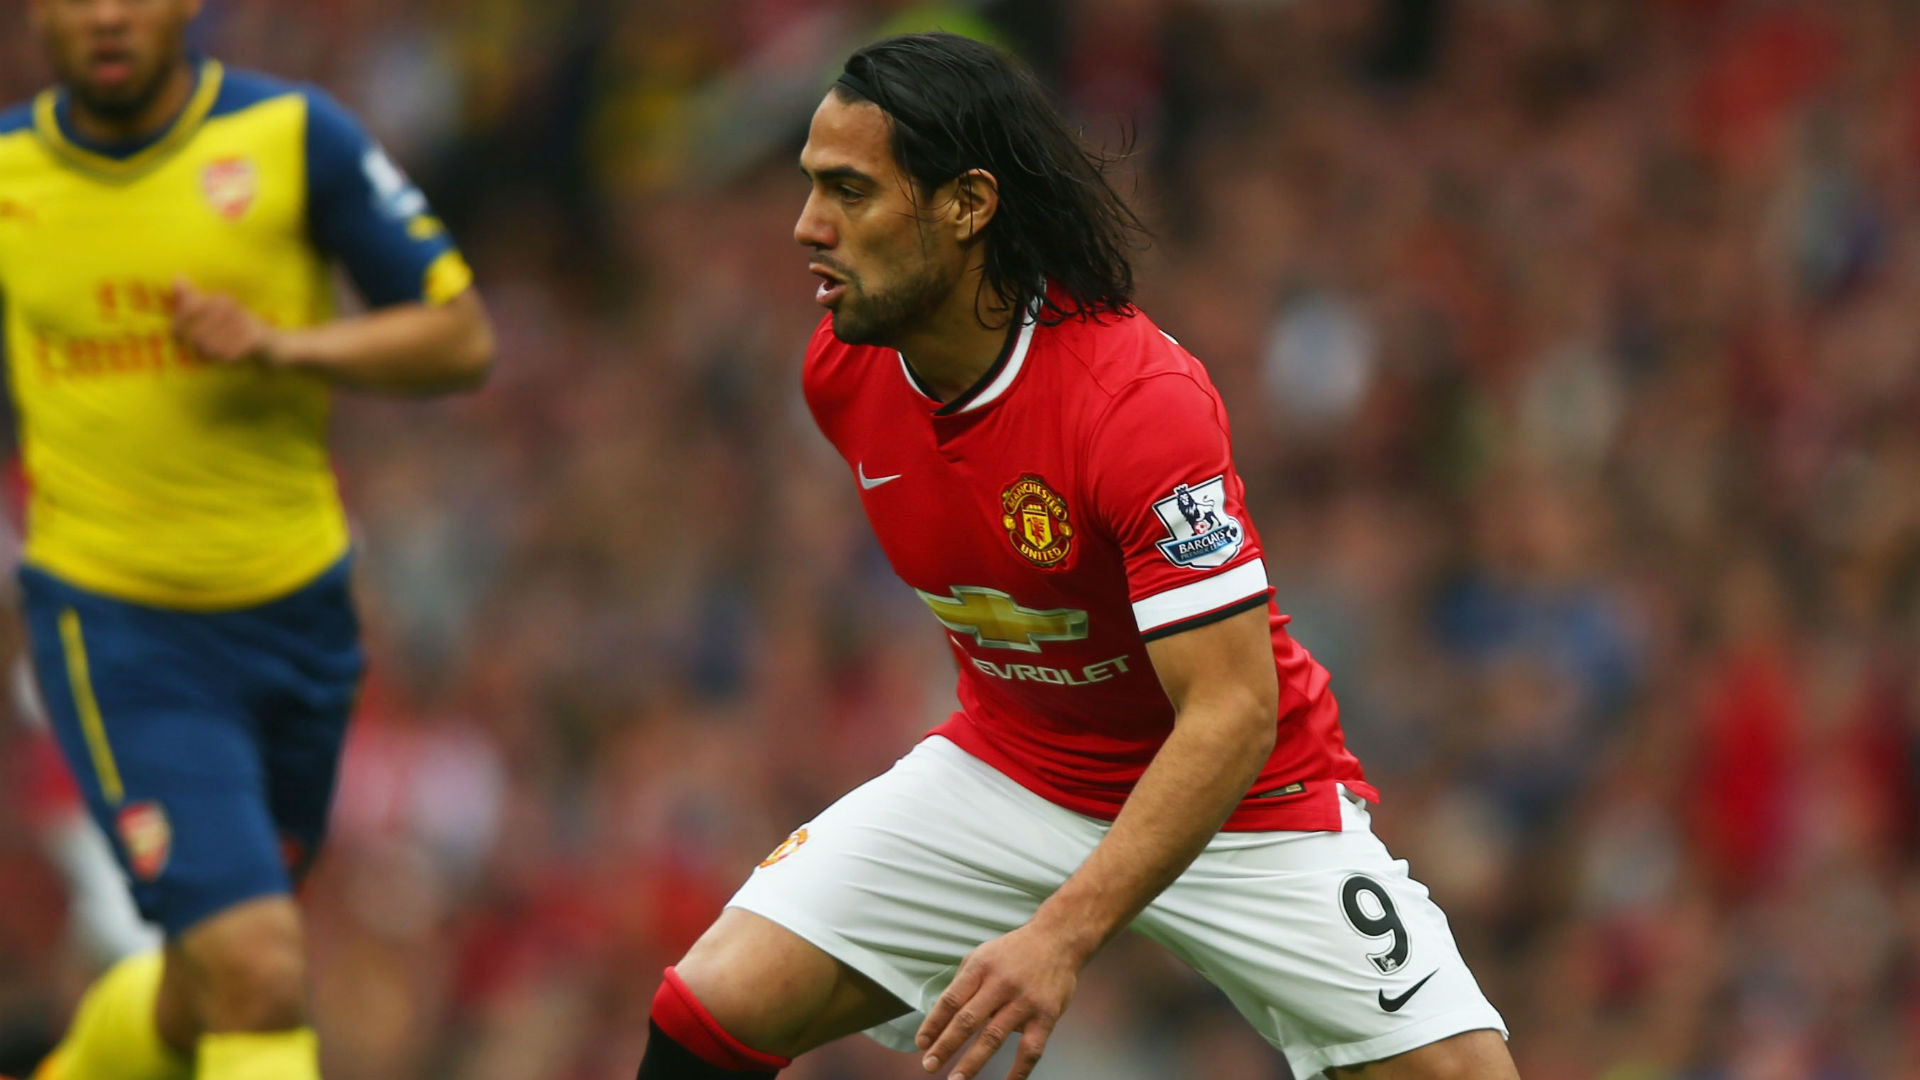 Radamel Falcao heading to Chelsea on loan deal